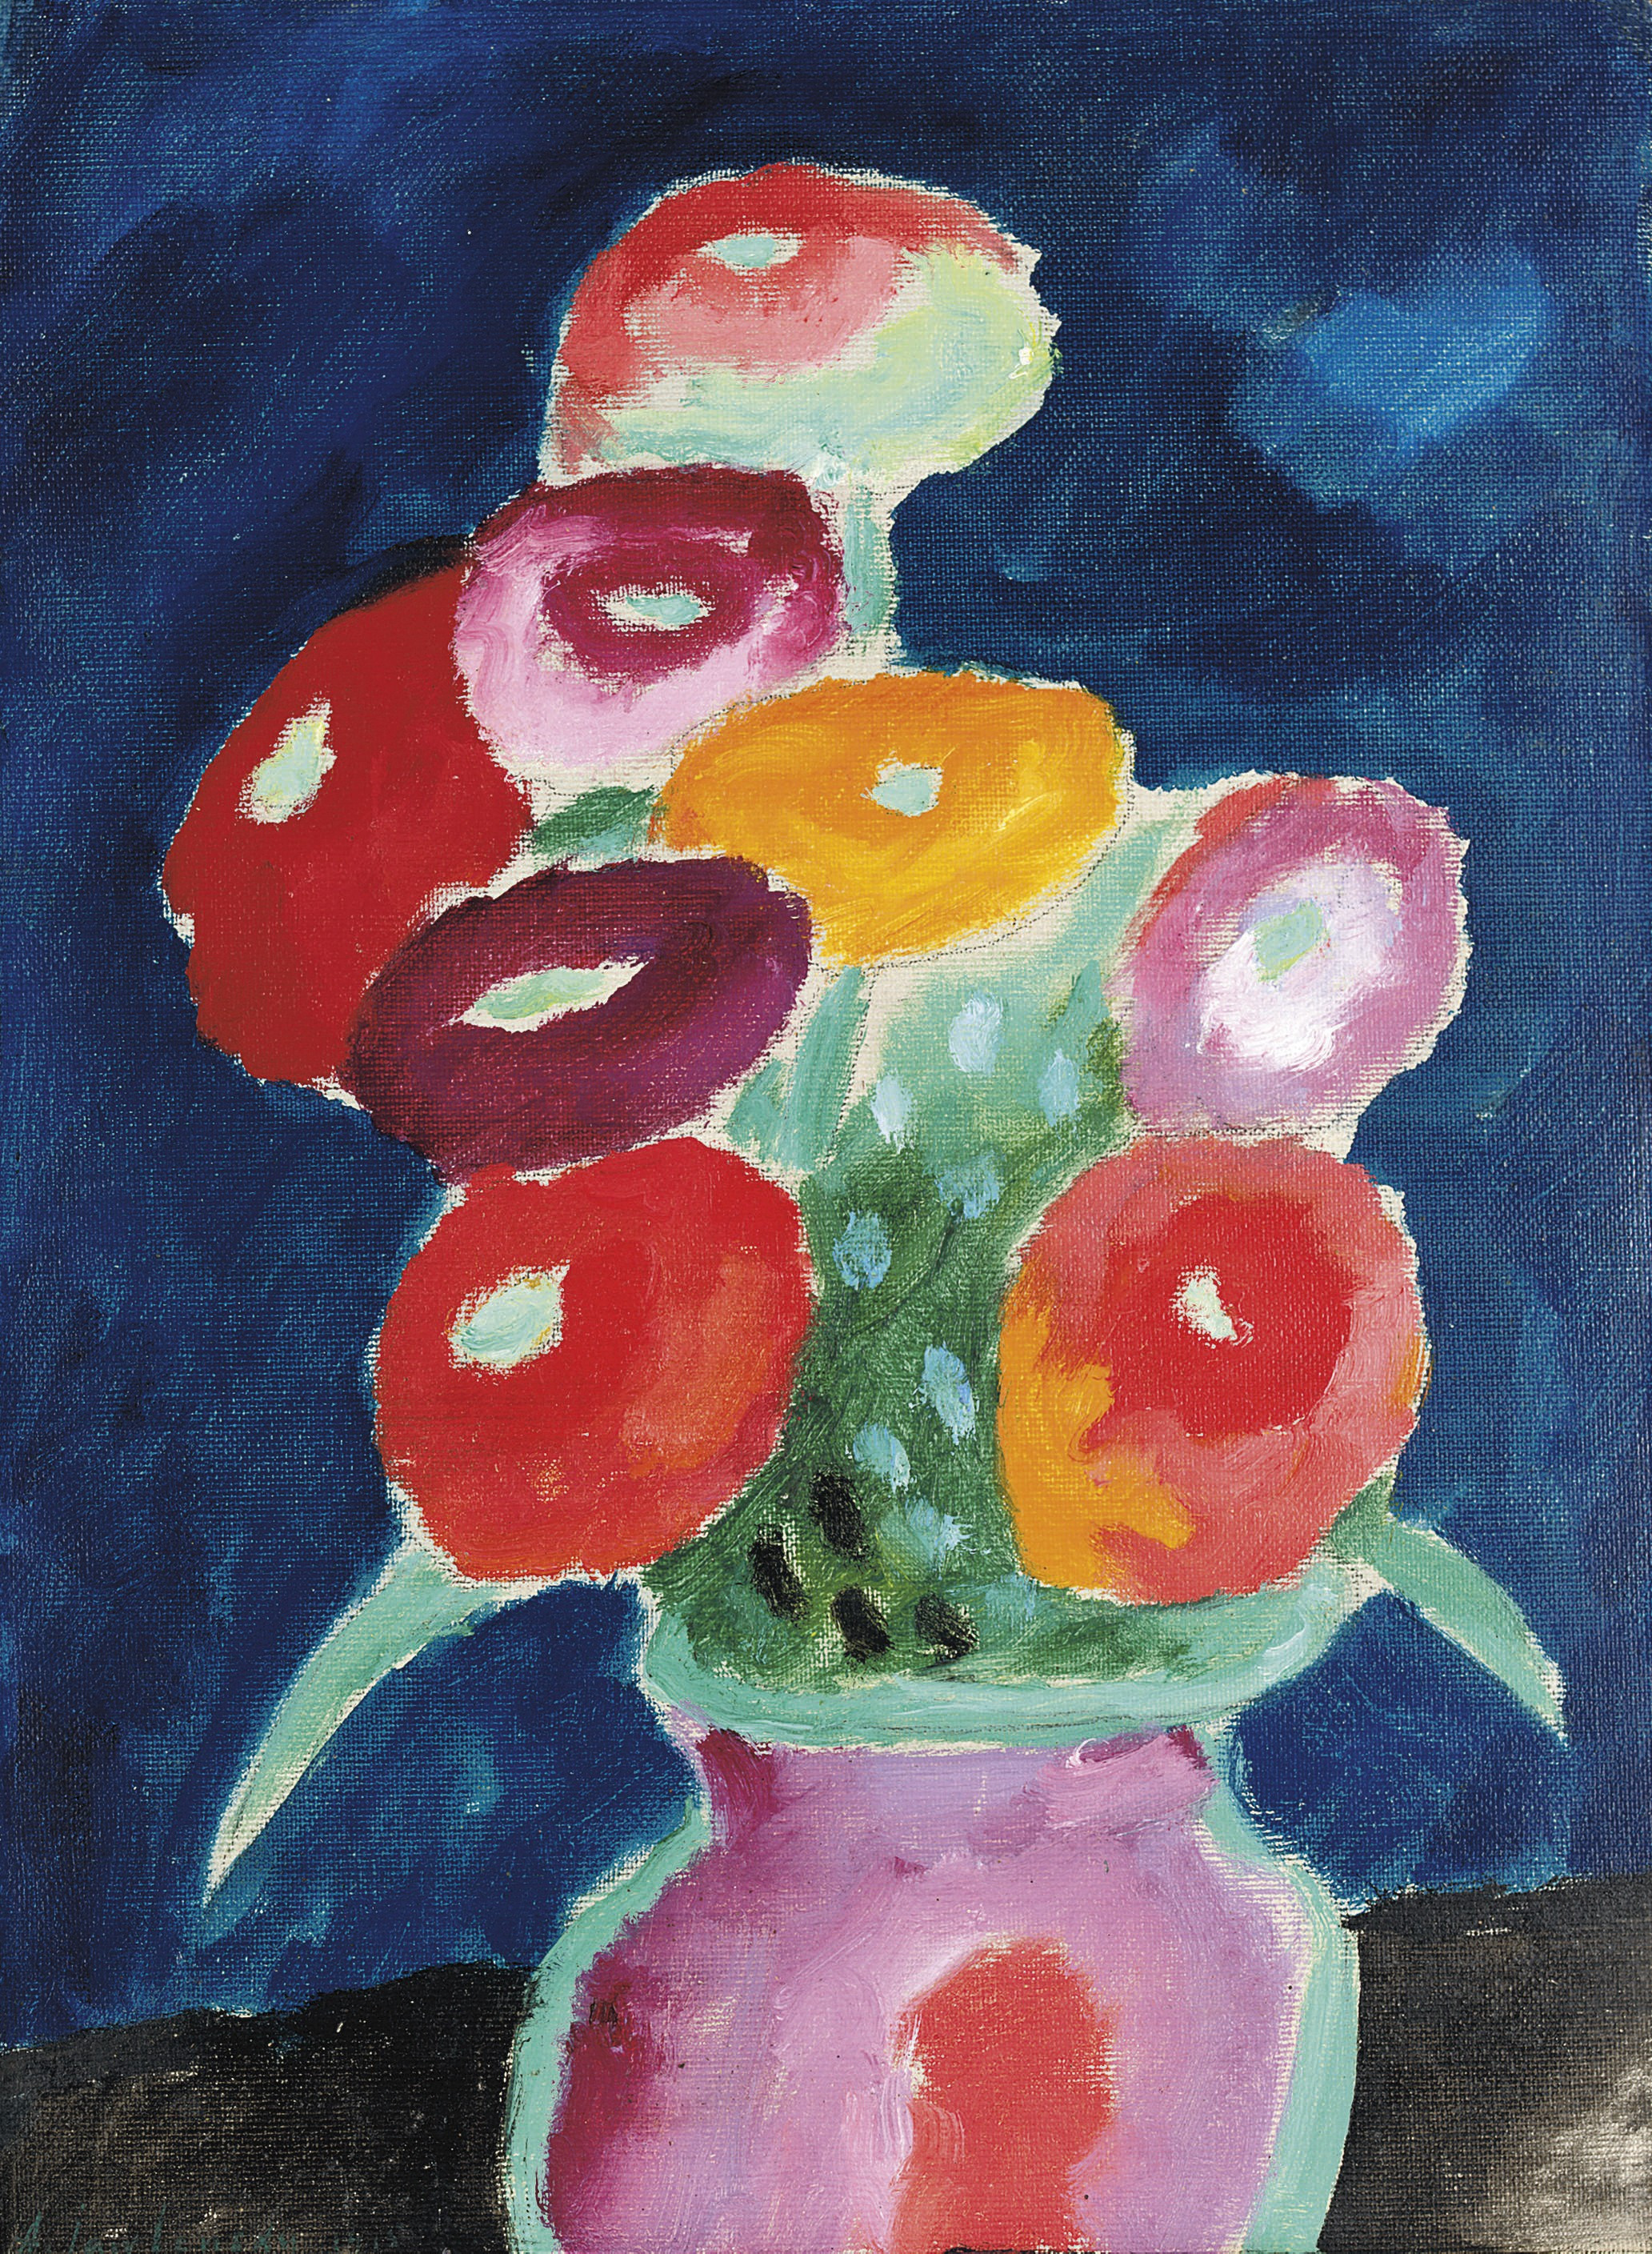 file alexej von jawlensky blumen in einer vase wikimedia commons. Black Bedroom Furniture Sets. Home Design Ideas